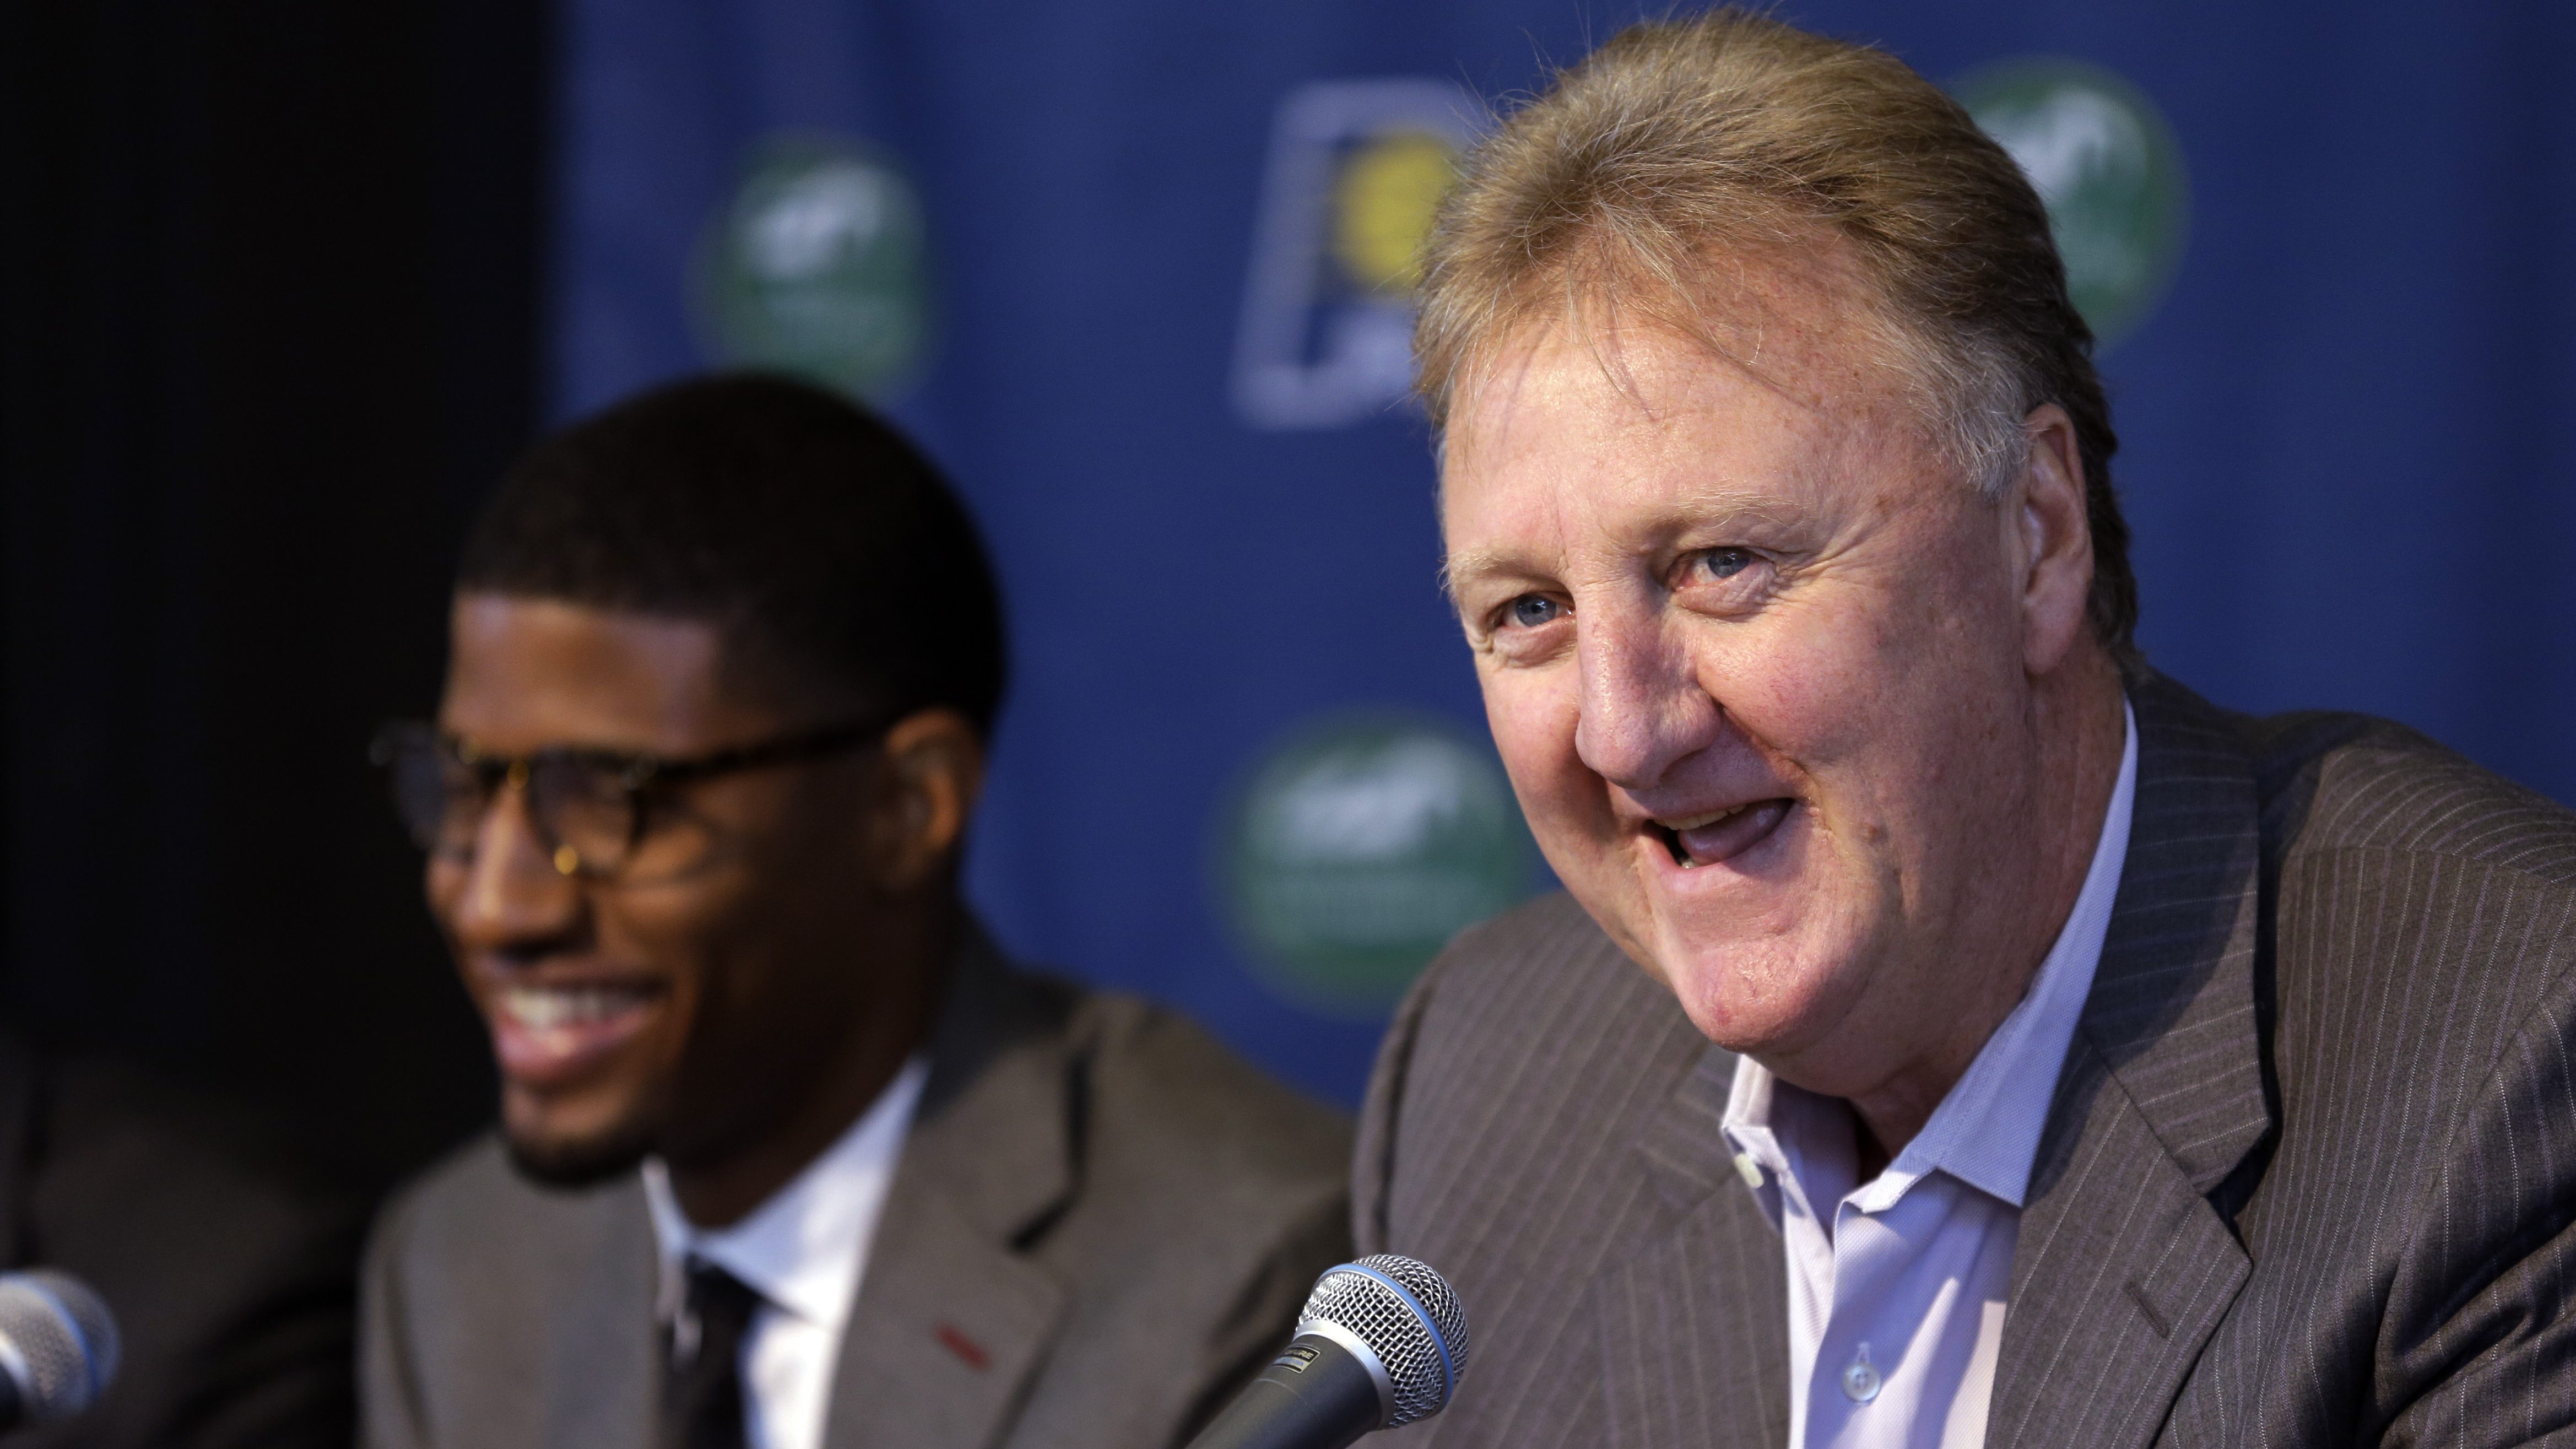 Rumor: Paul George was indicating Pacers fans should boo Larry Bird